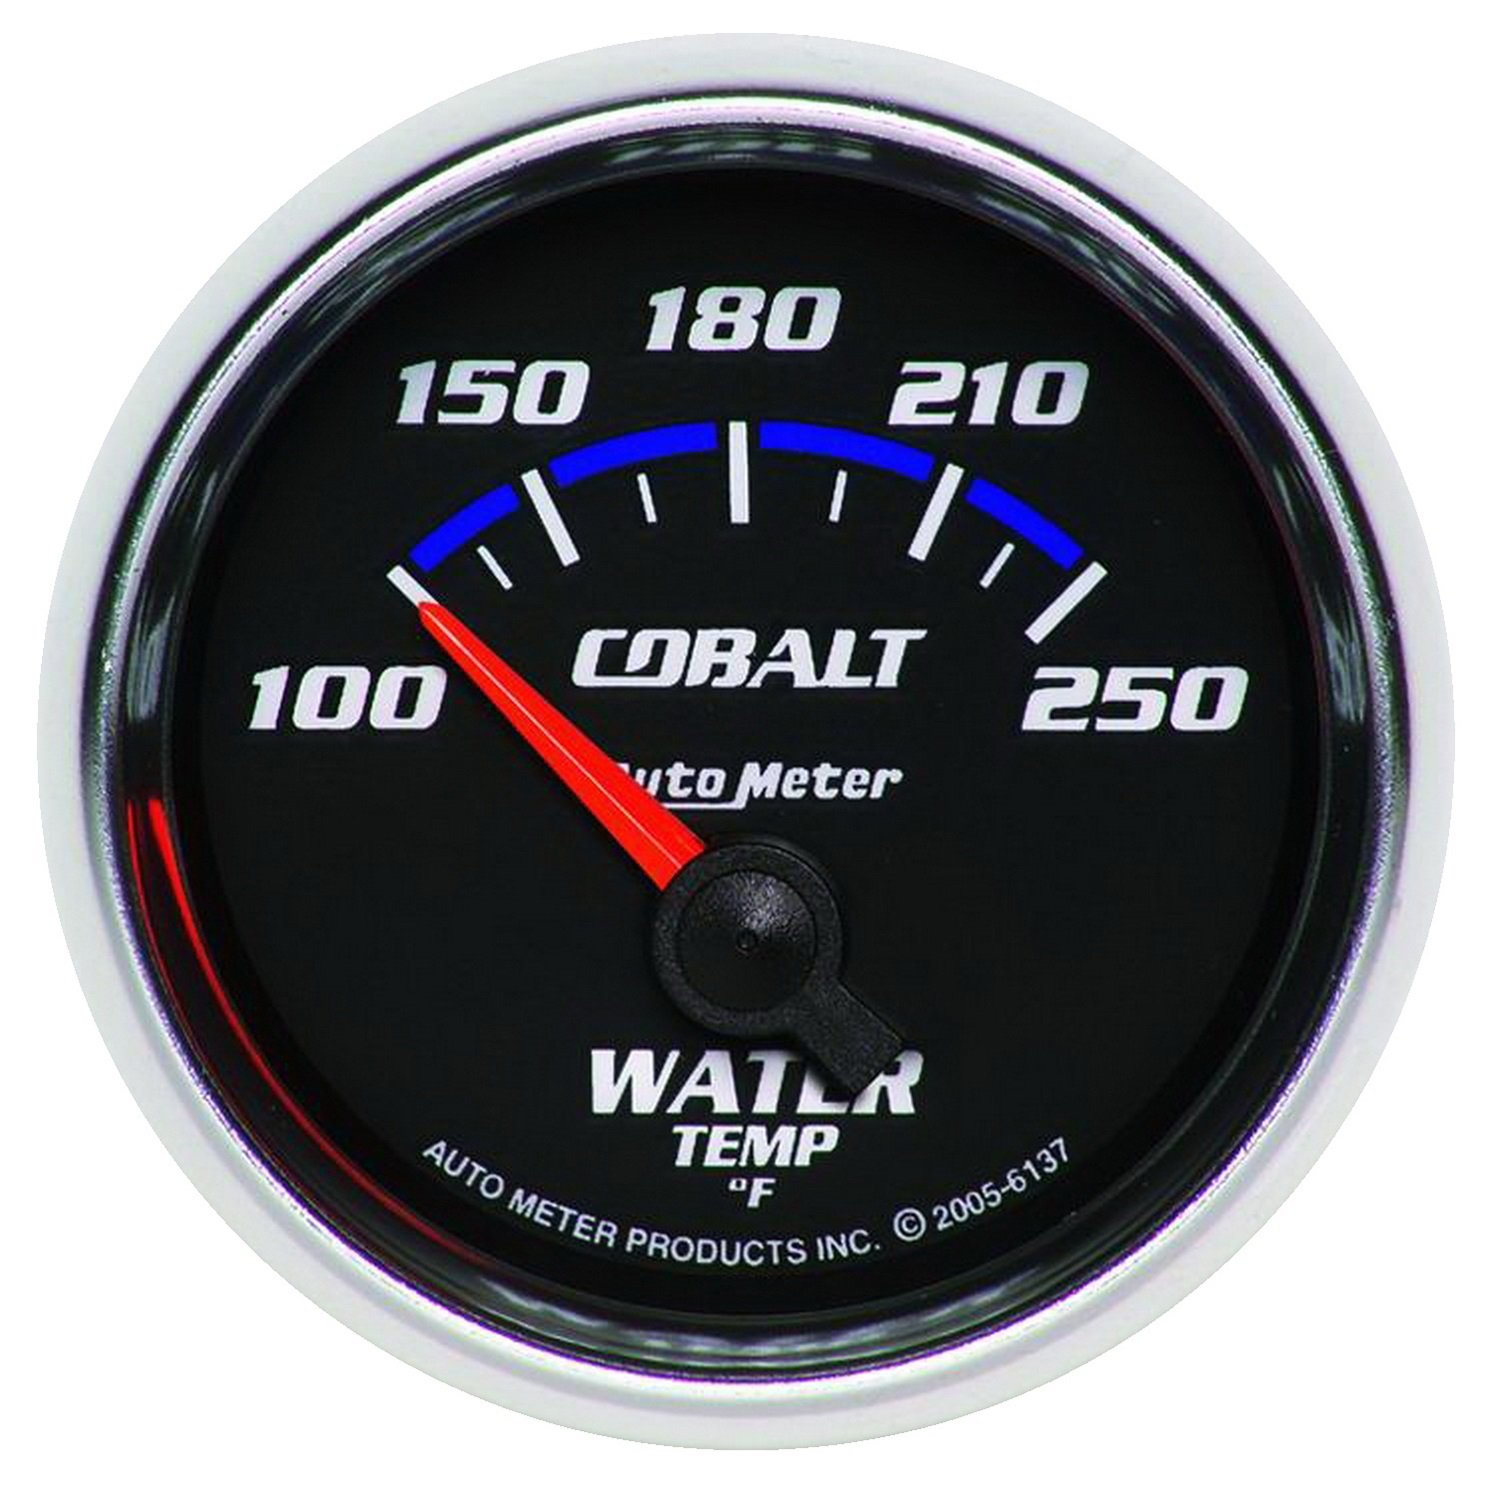 Auto Meter 6137 Cobalt Short Sweep Electric Water Temperature Gauge by AUTO METER